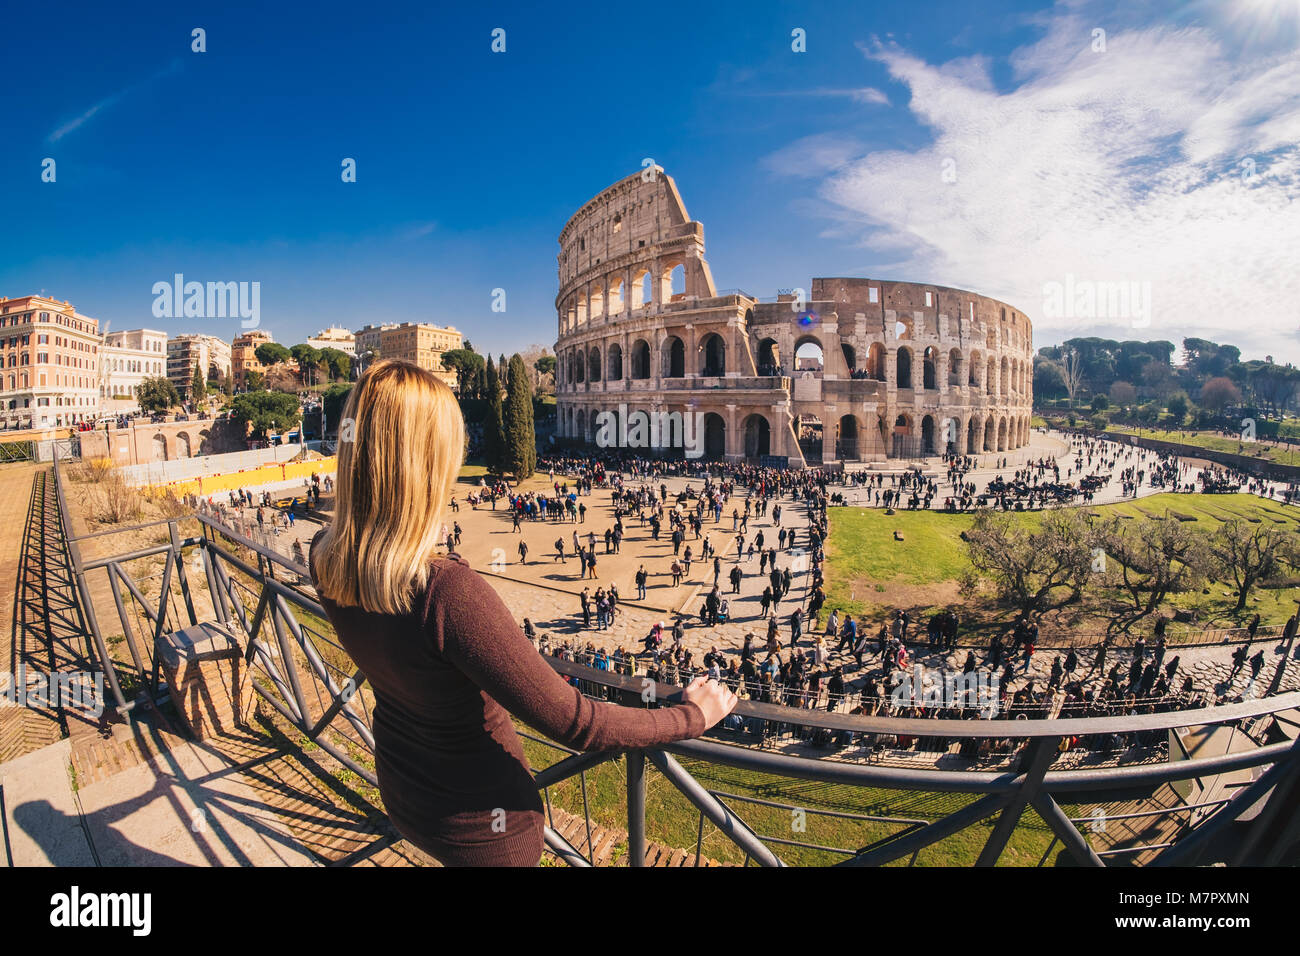 Woman tourist enjoying the view of the Roman Colosseum in Rome, Italy Stock Photo